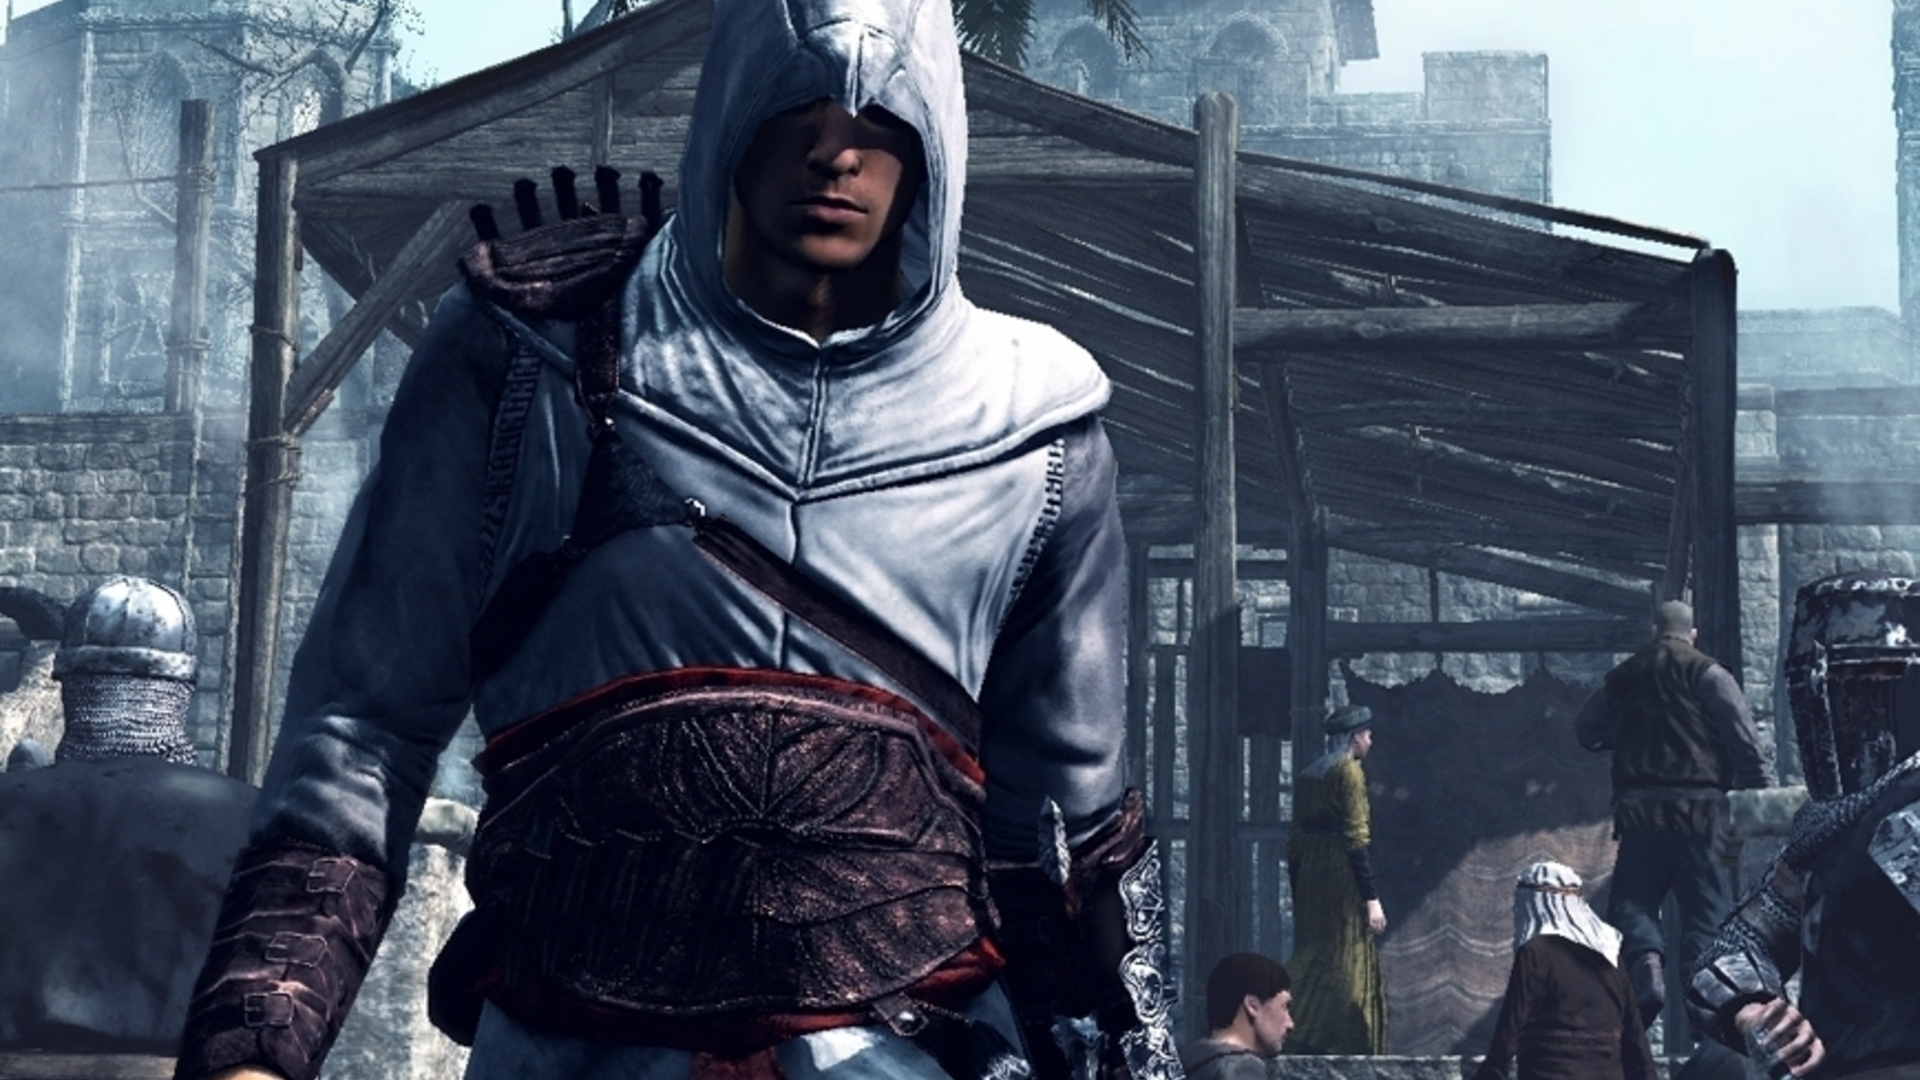 Assassin's Creed film dated for August 2015